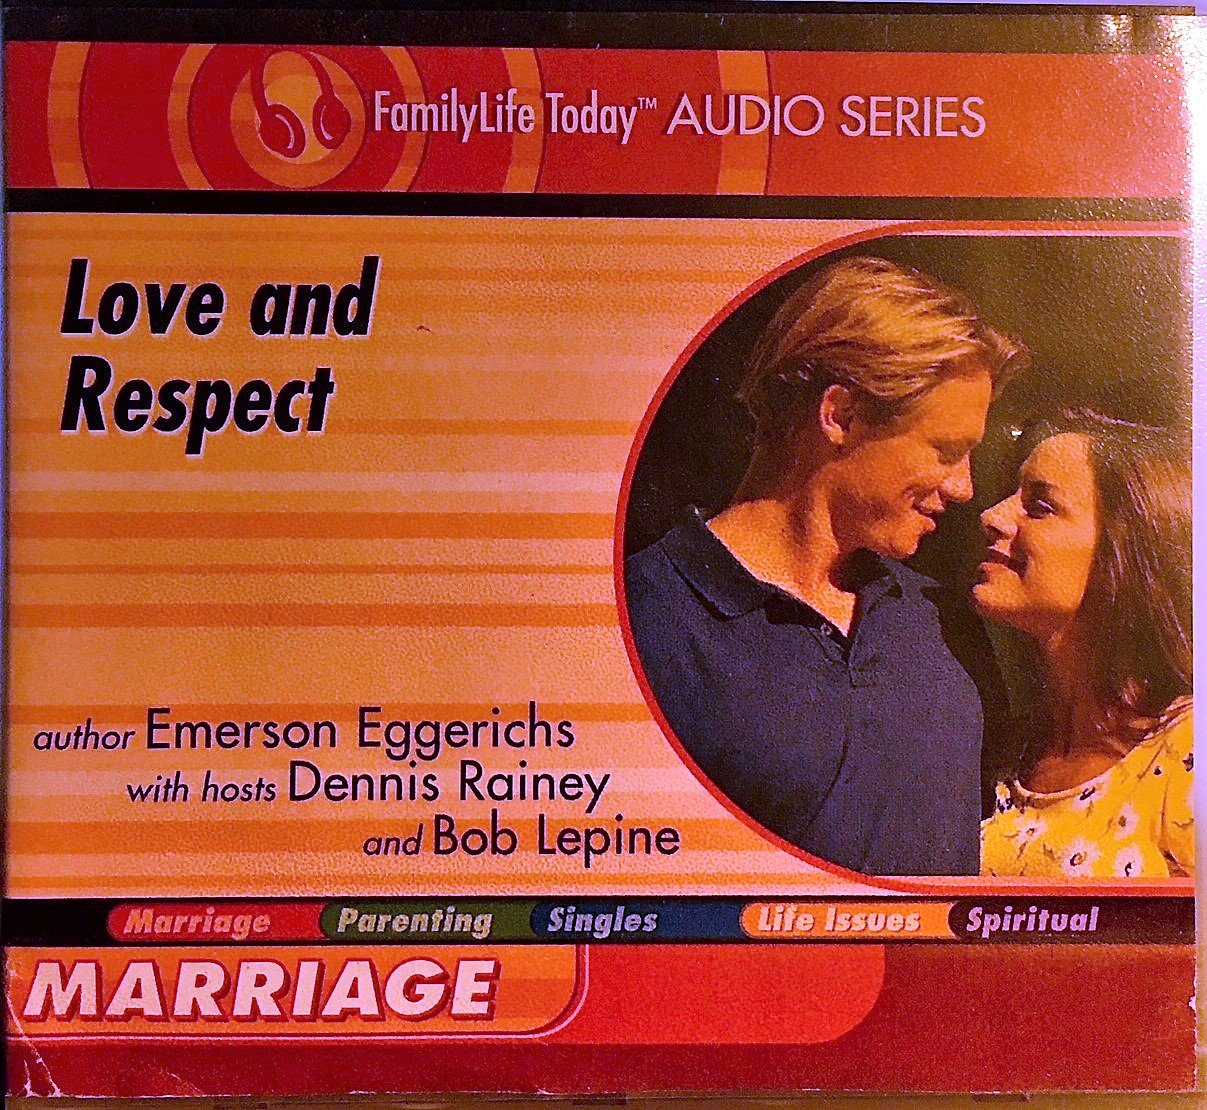 Love And Respect Marriage 2 Disc Audio Book Family Life Today Audio Series Emerson Eggerichs 9781572298446 Amazon Com Books